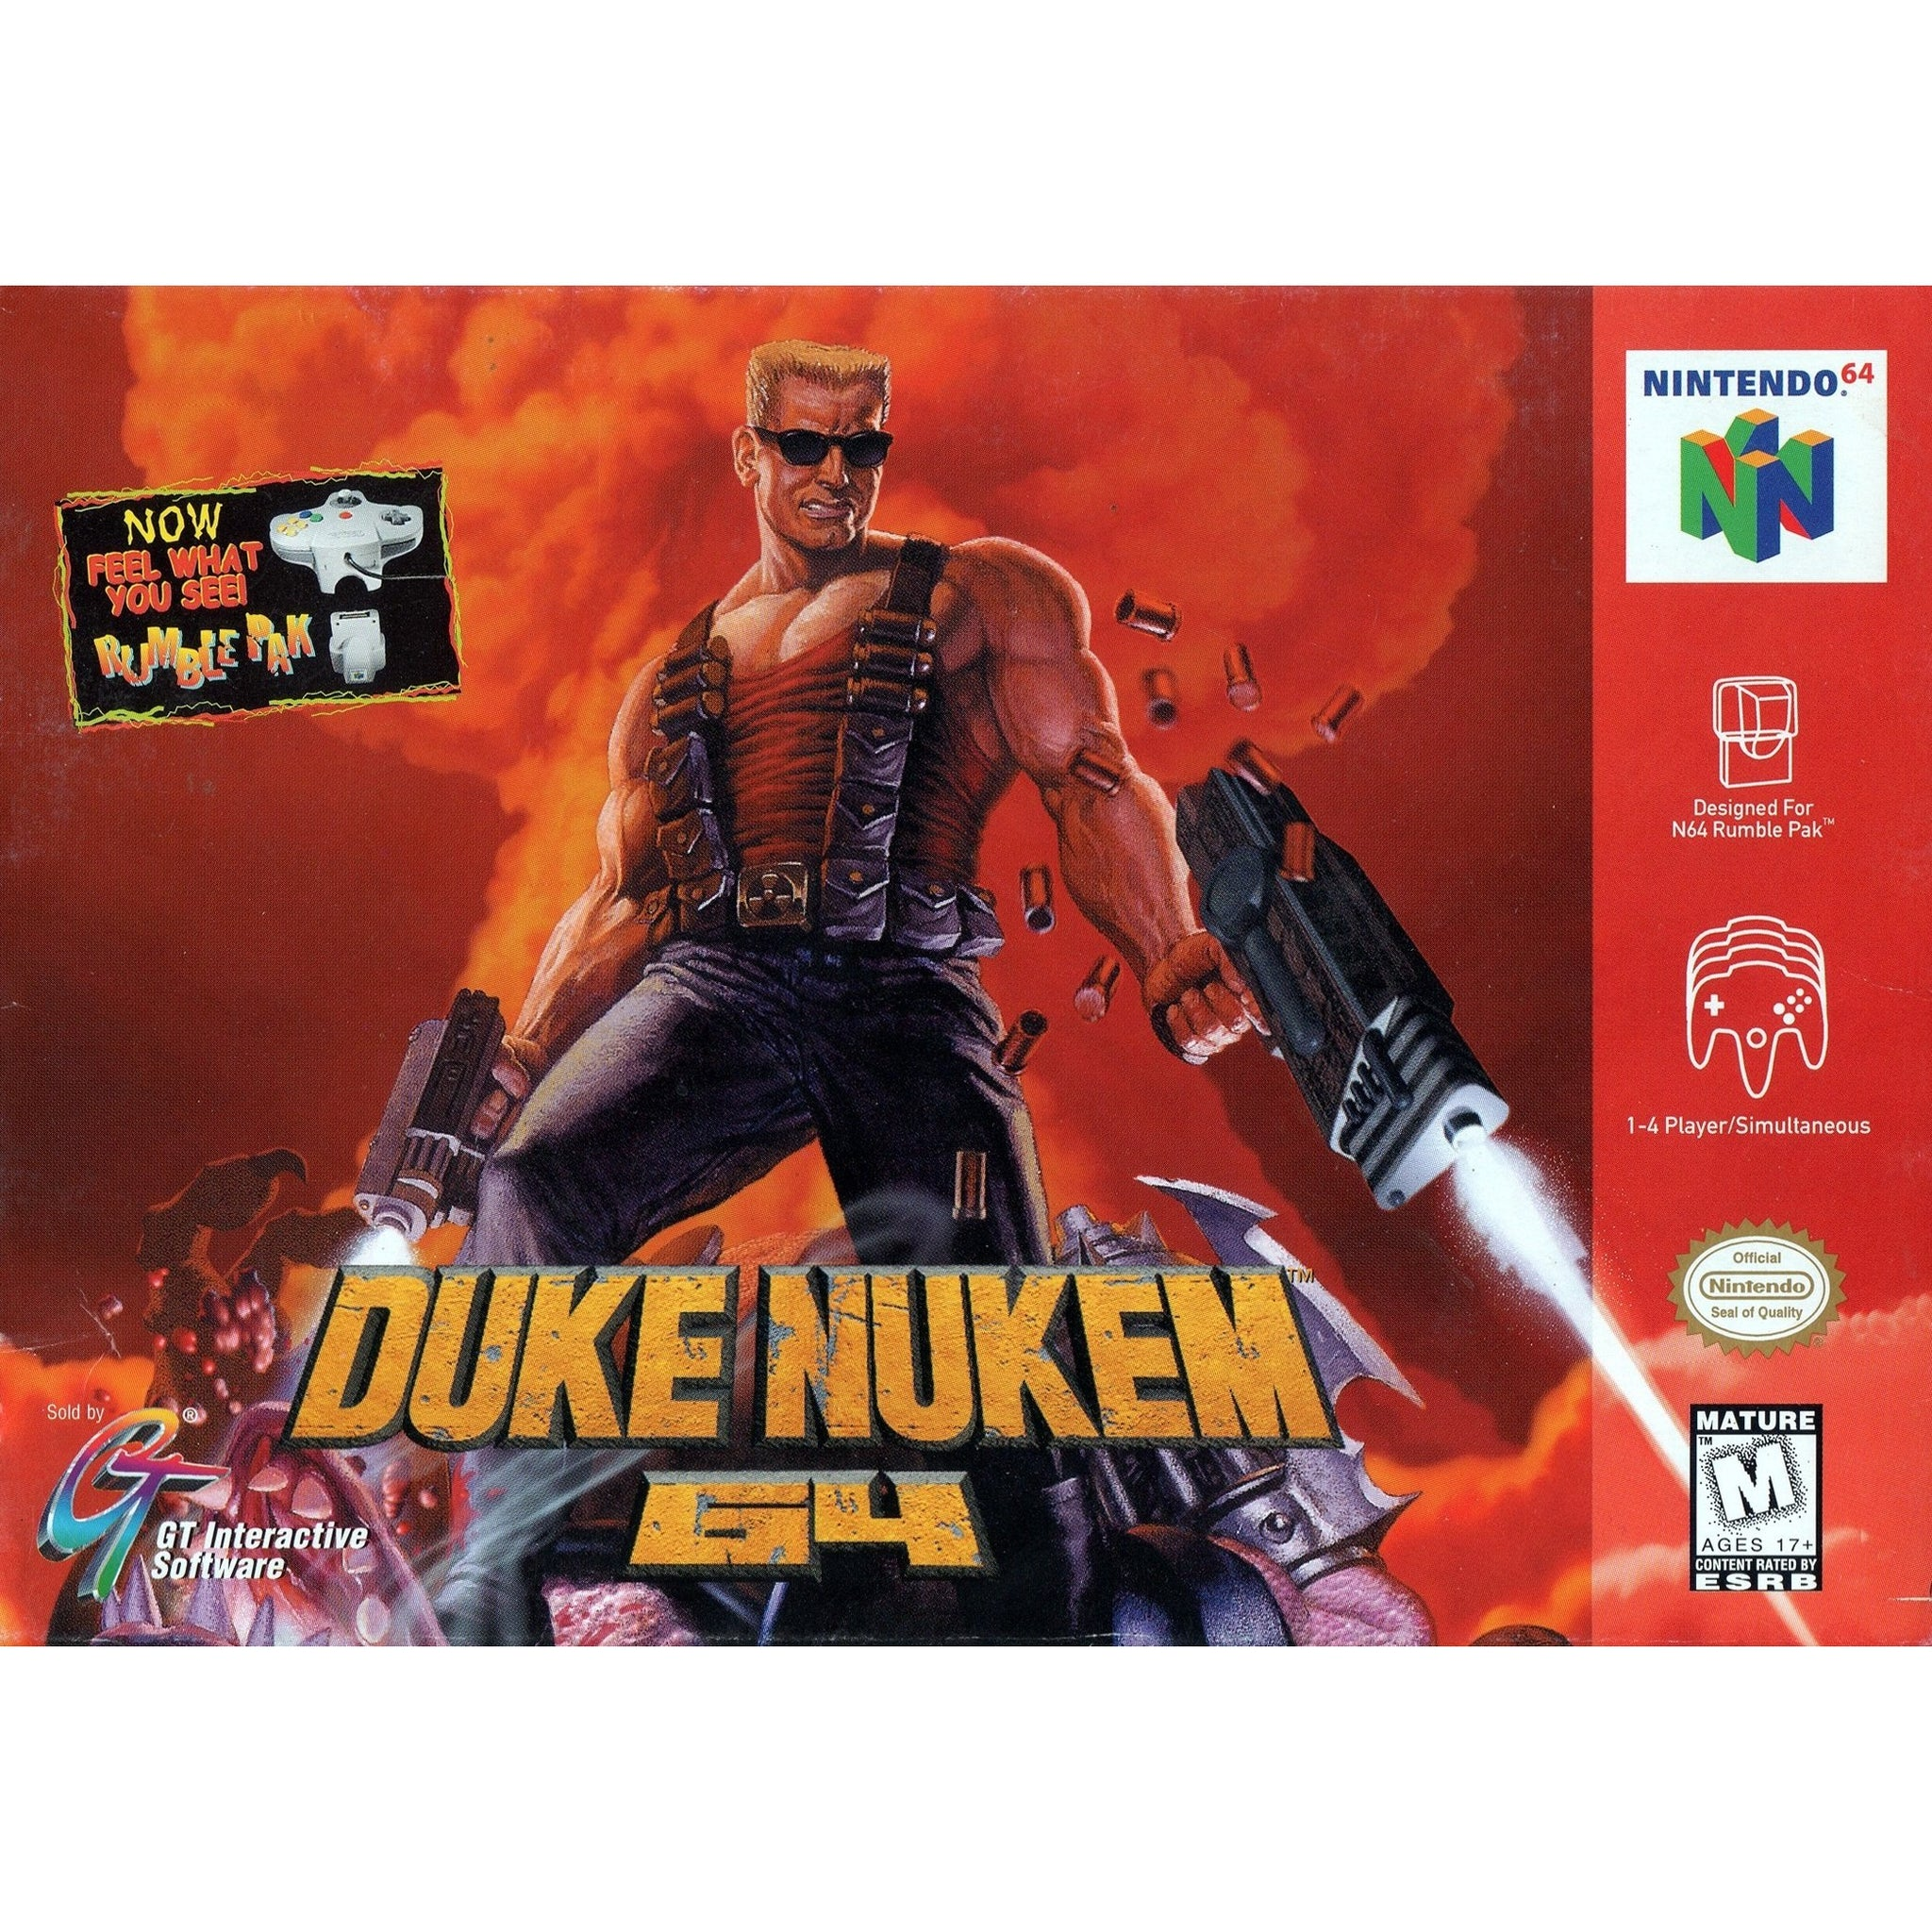 Duke Nukem 64 - Authentic Nintendo 64 (N64) Game Cartridge - YourGamingShop.com - Buy, Sell, Trade Video Games Online. 120 Day Warranty. Satisfaction Guaranteed.